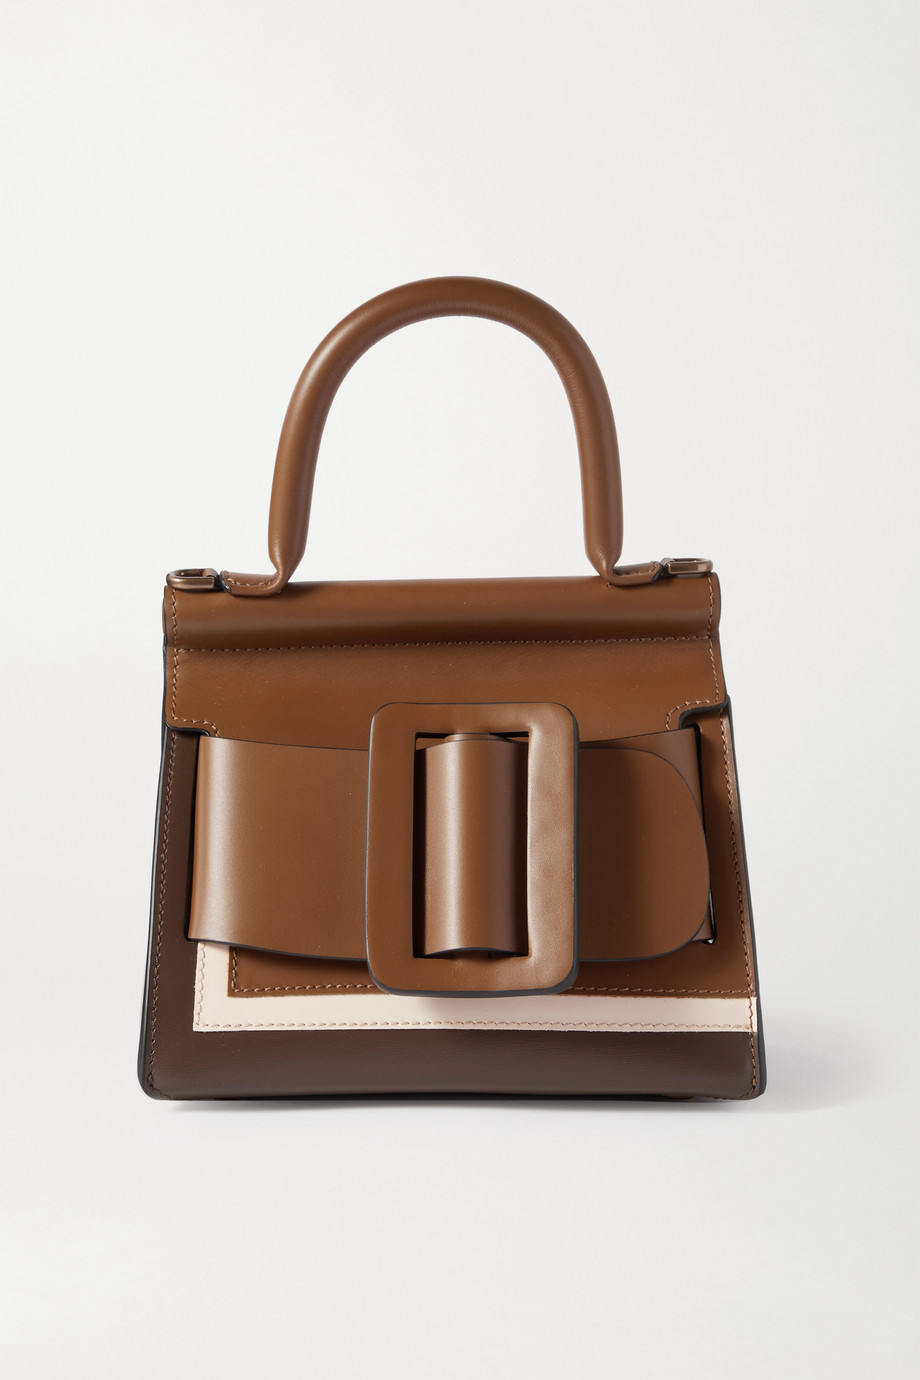 BOYY Karl 19 mini buckled color-block leather tote